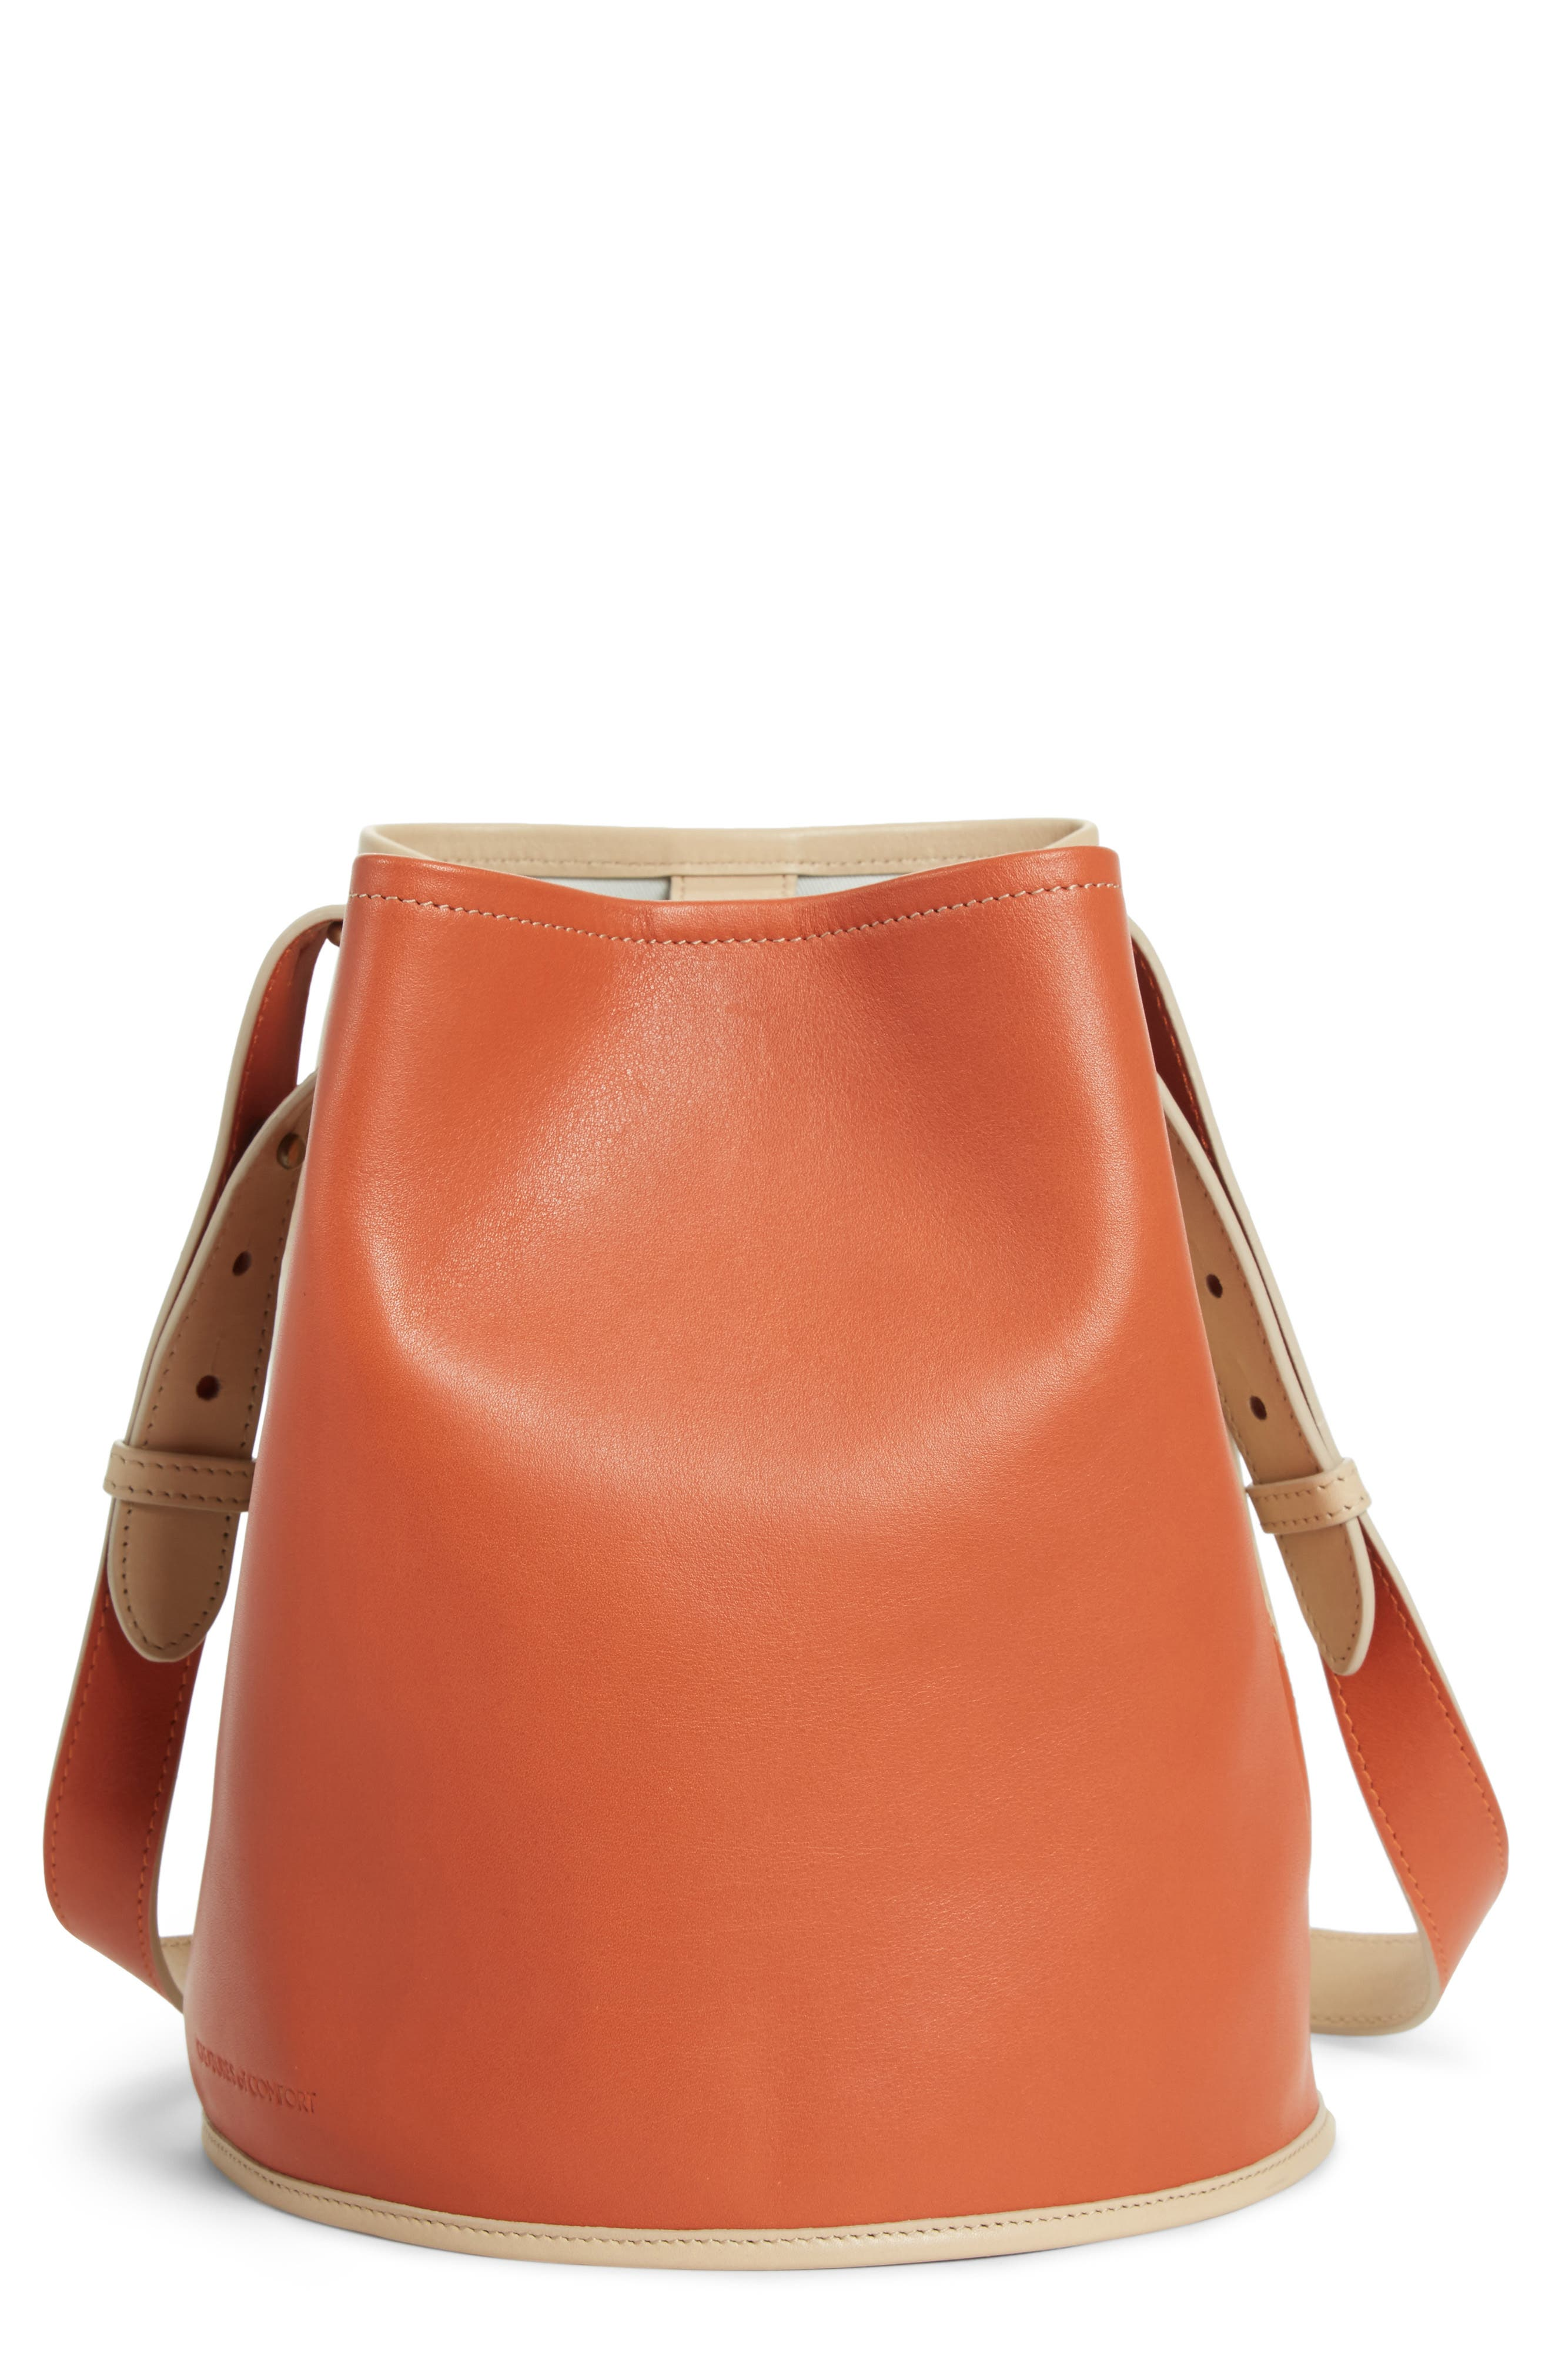 Creatures of Comfort Small Bucket Bicolor Leather Bag